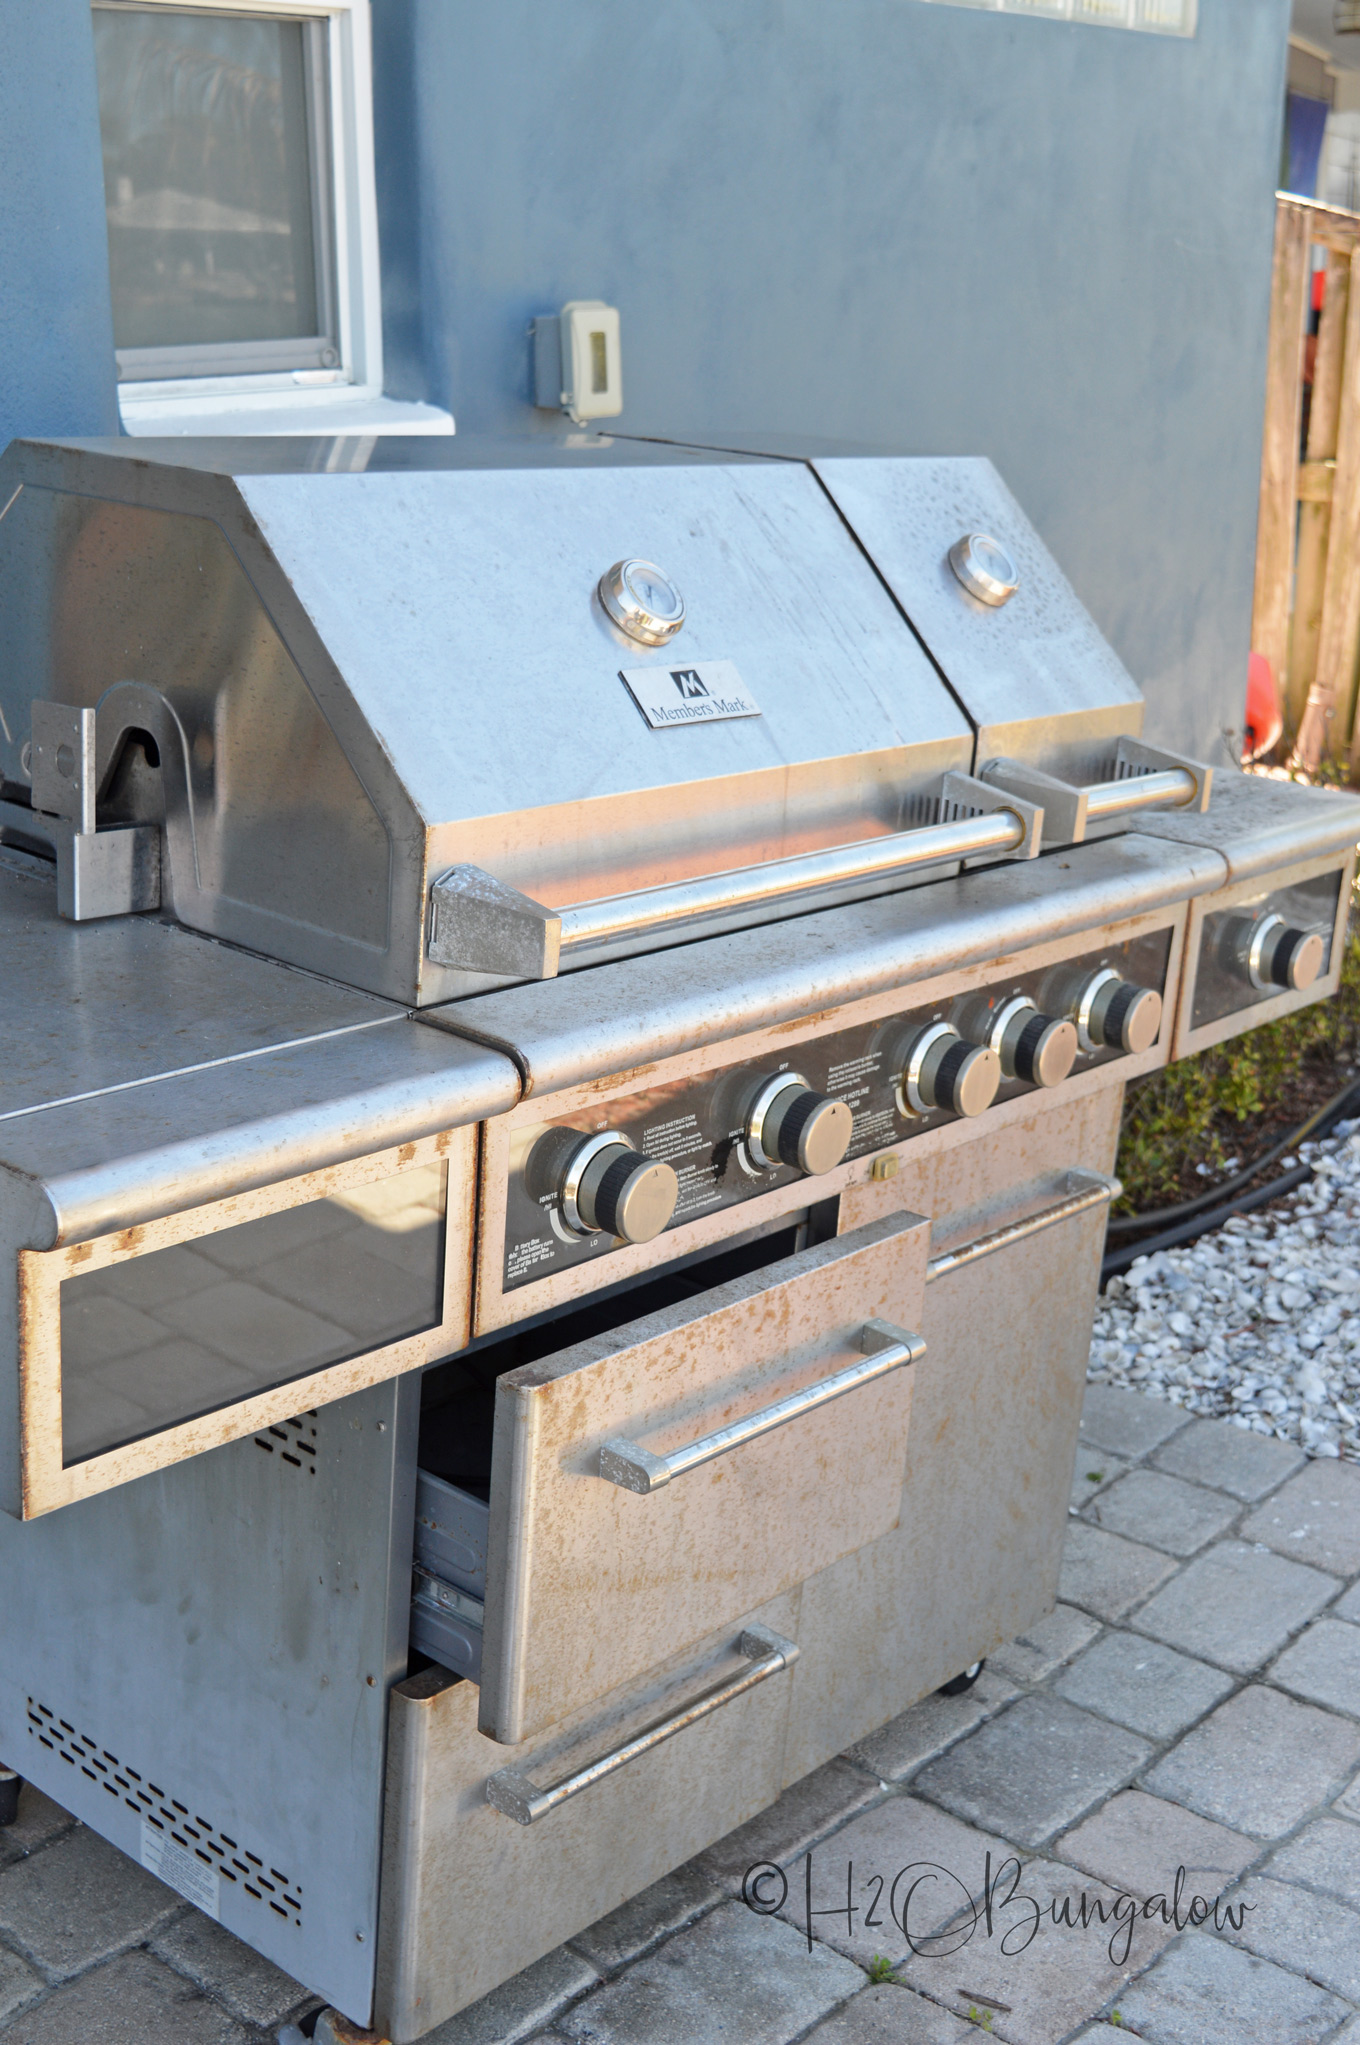 Tutorial on how to clean and makeover a barbecue grill with just a few products, a little elbow grease and some creativity. I turned my rusty old barbecue grill into a good looking almost new looking outdoor grill. You can too. Works on all types of outdoor grills, natural gas, propane and charcoal.